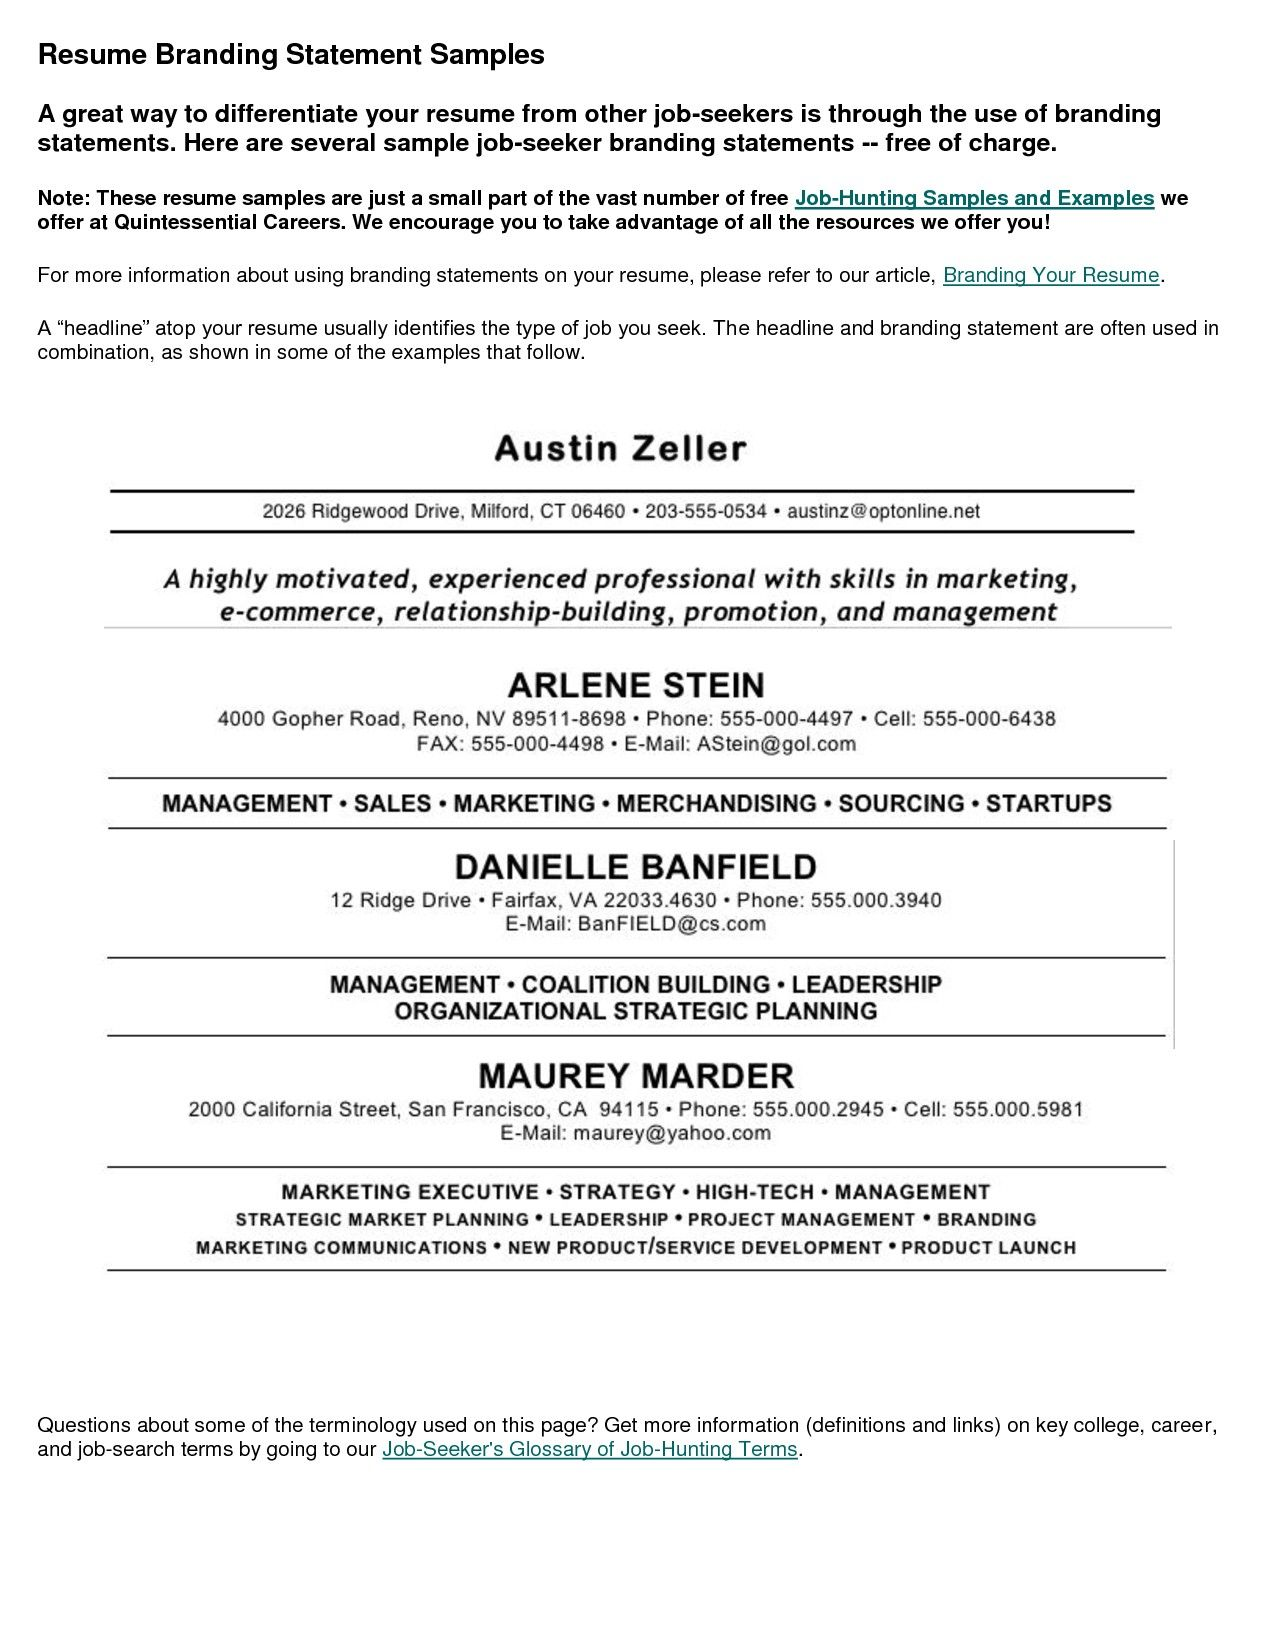 free job resume sample